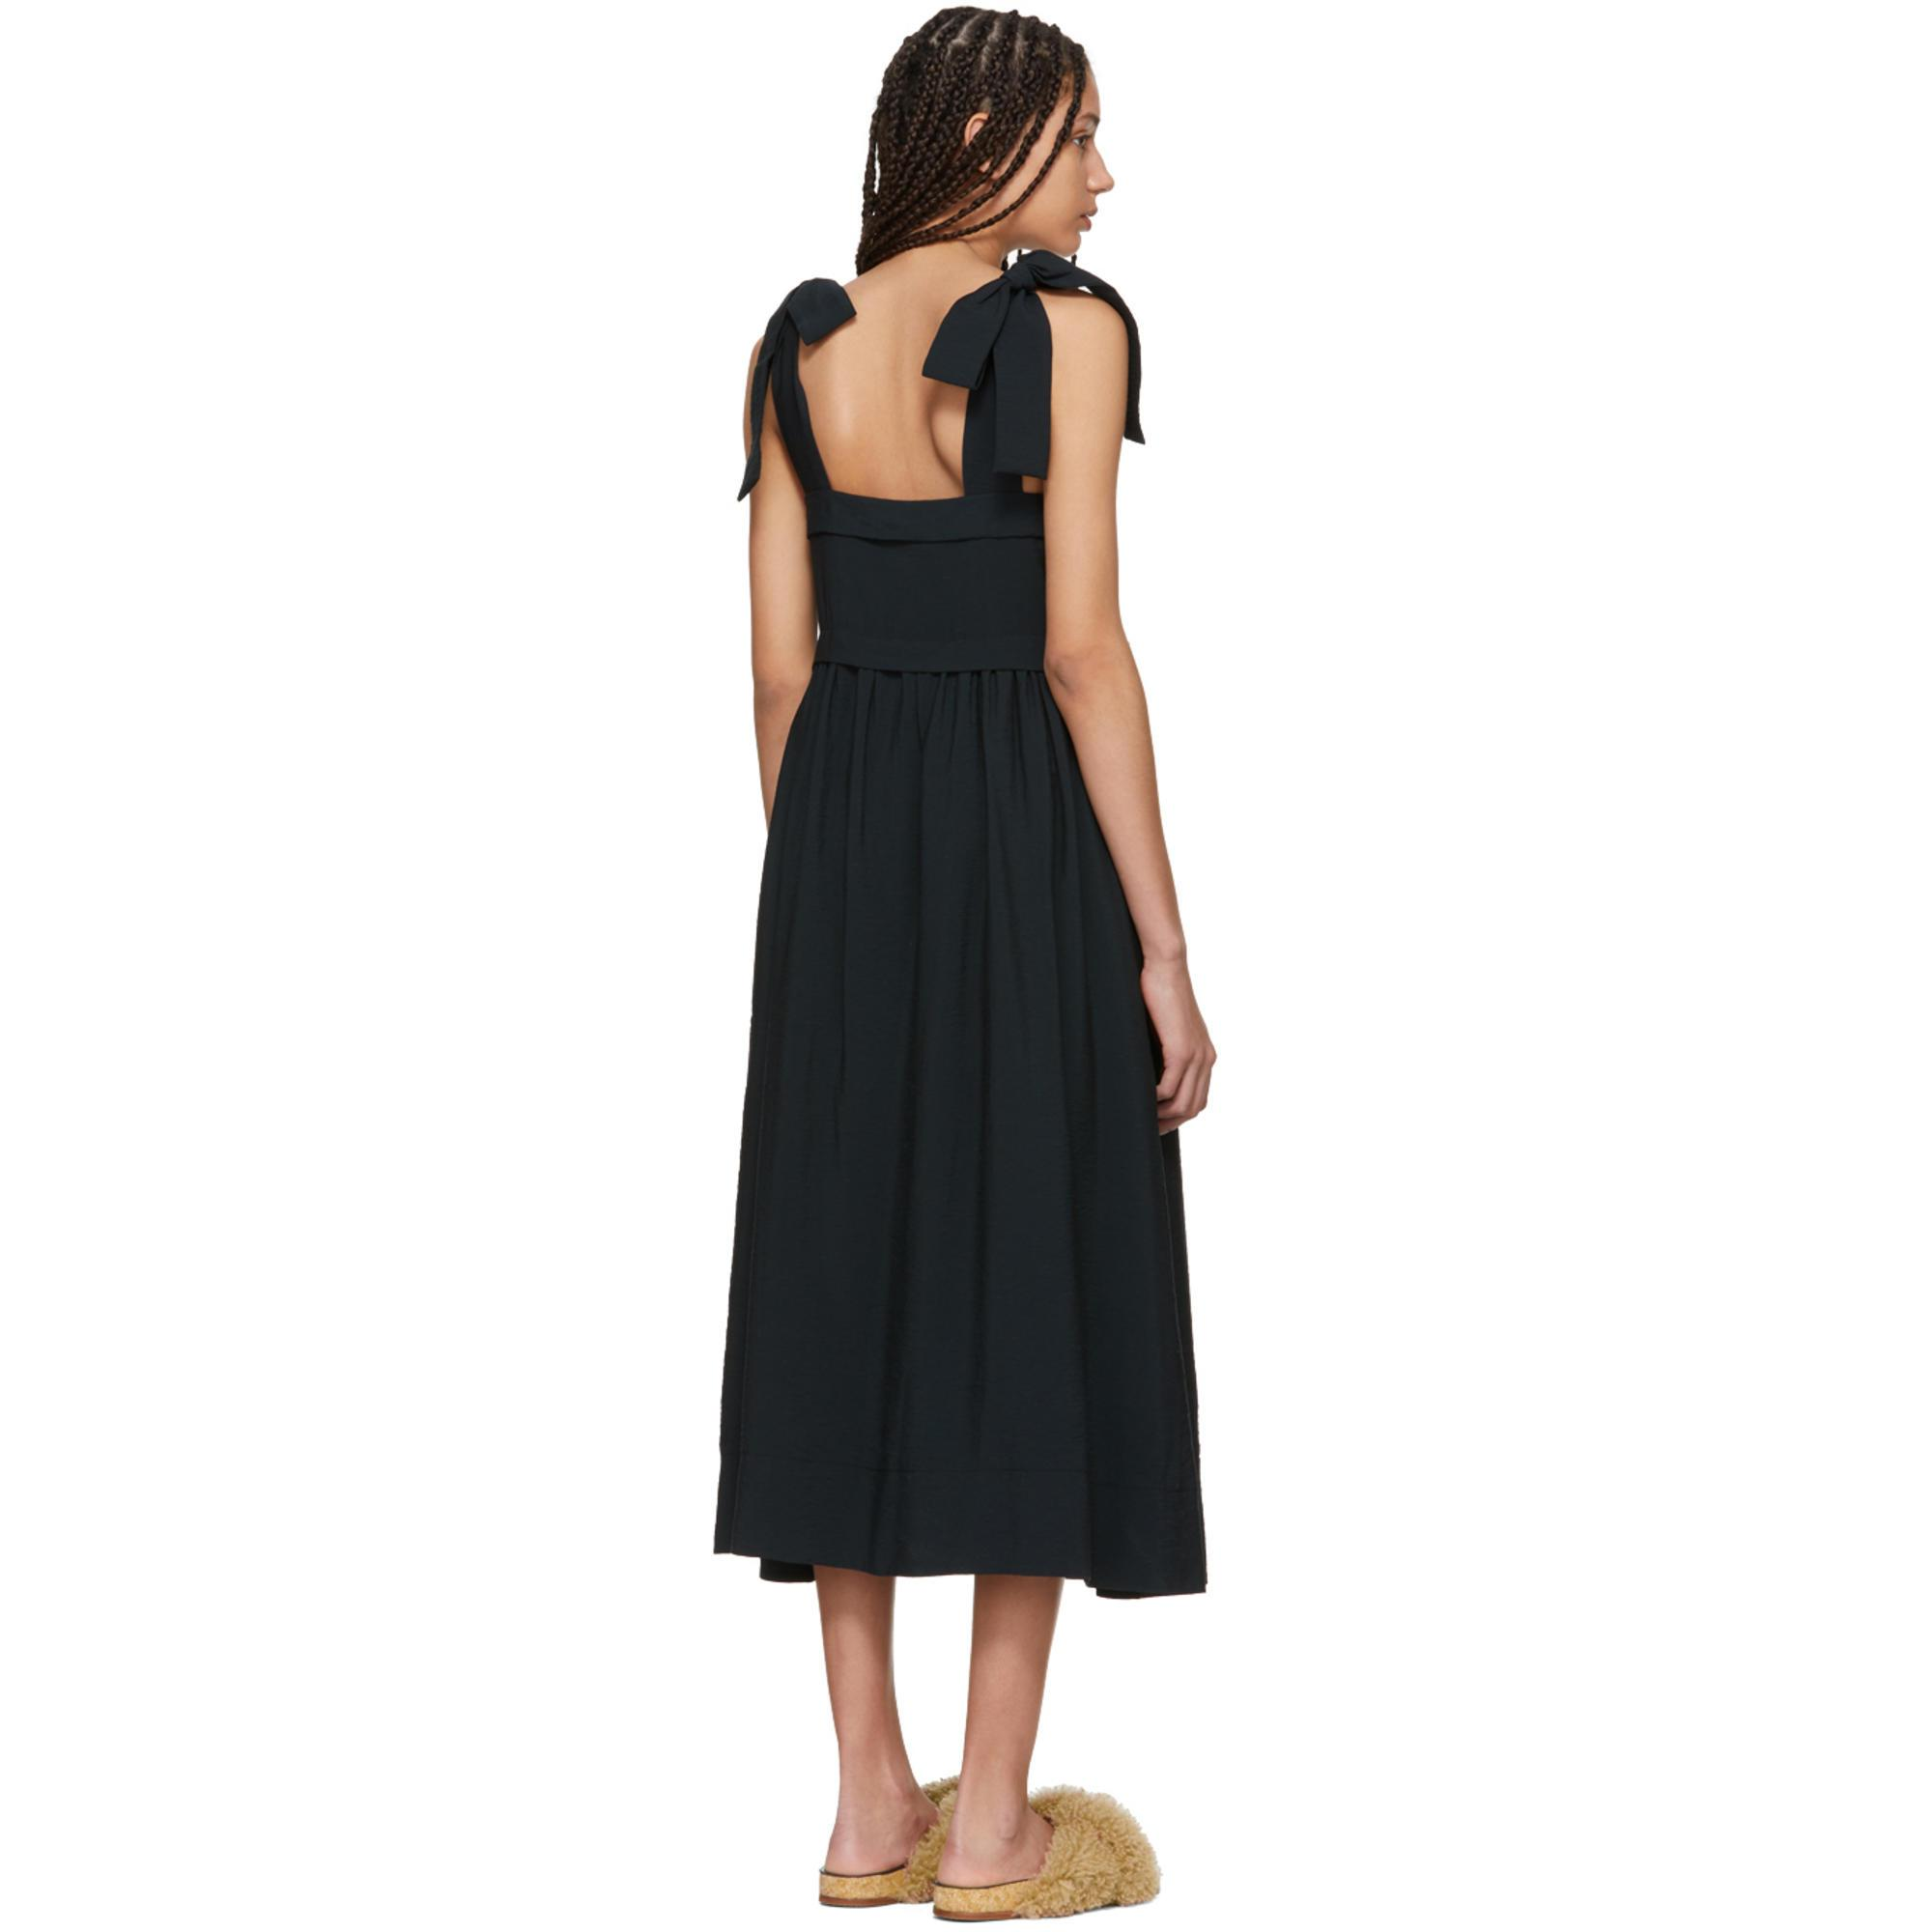 Lyst - See By Chloé Black Tie Shoulder Dress in Black